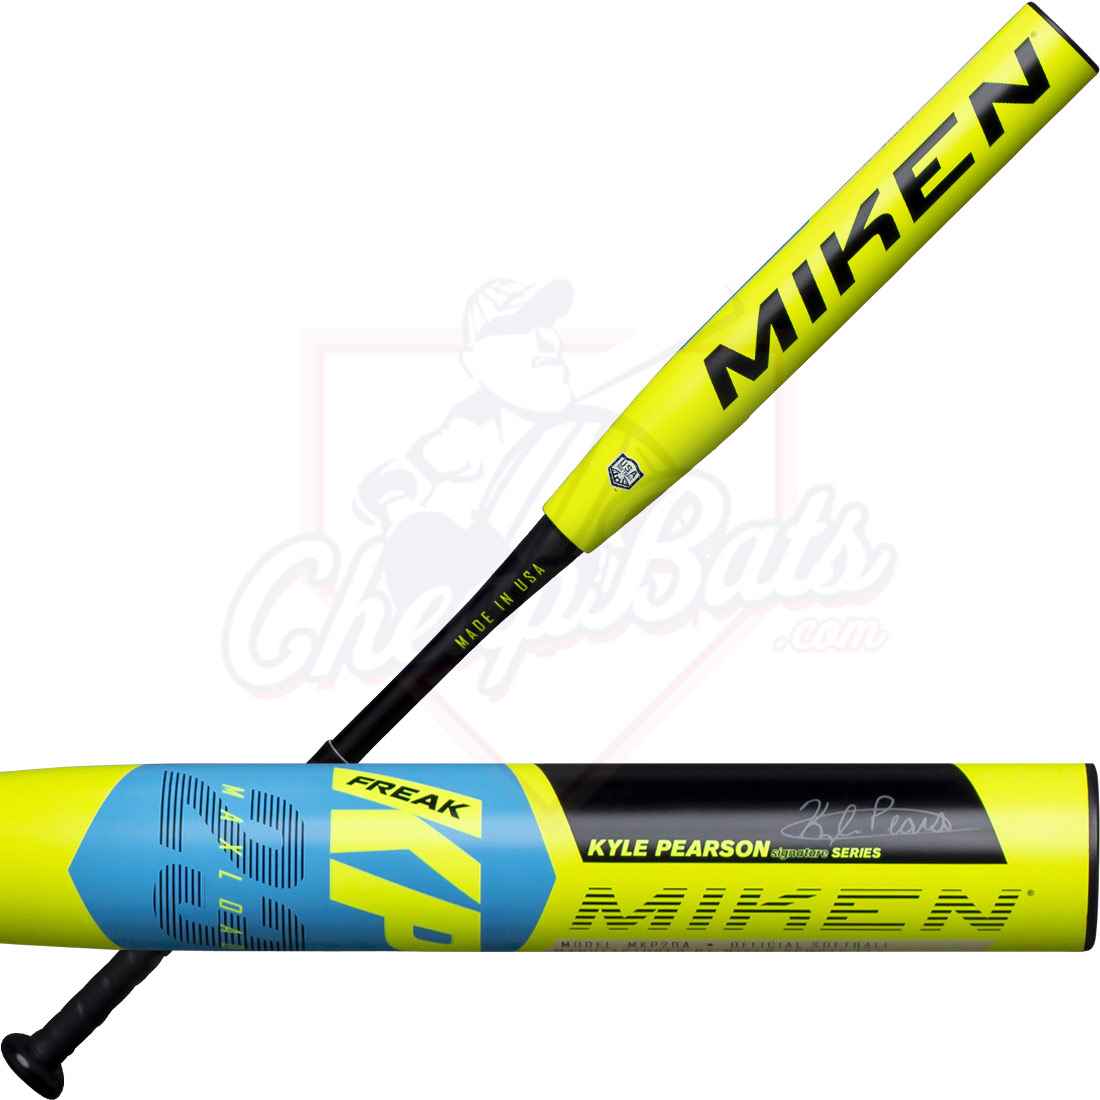 2020 Miken Freak 23 Slowpitch Softball Bat Maxload ASA MKP20A